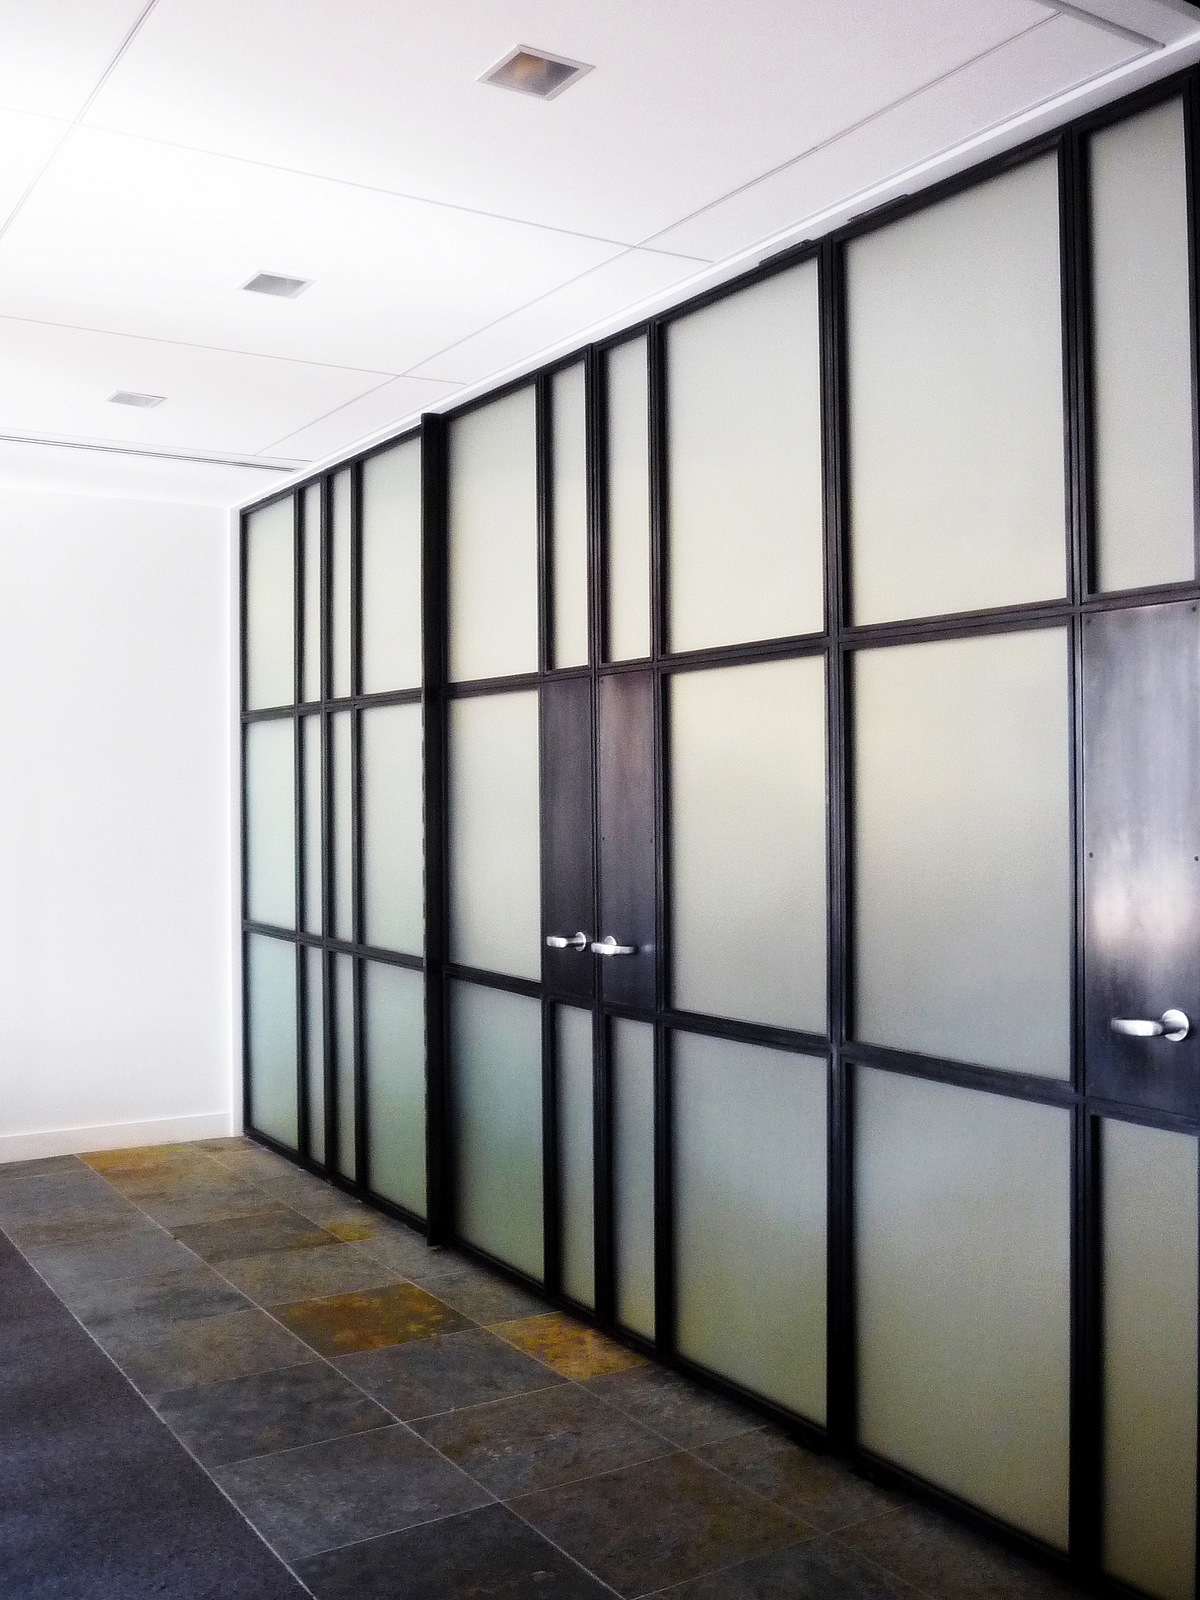 Pyrobel fire resistant glass rigid clear heat for Glass panels for exterior walls